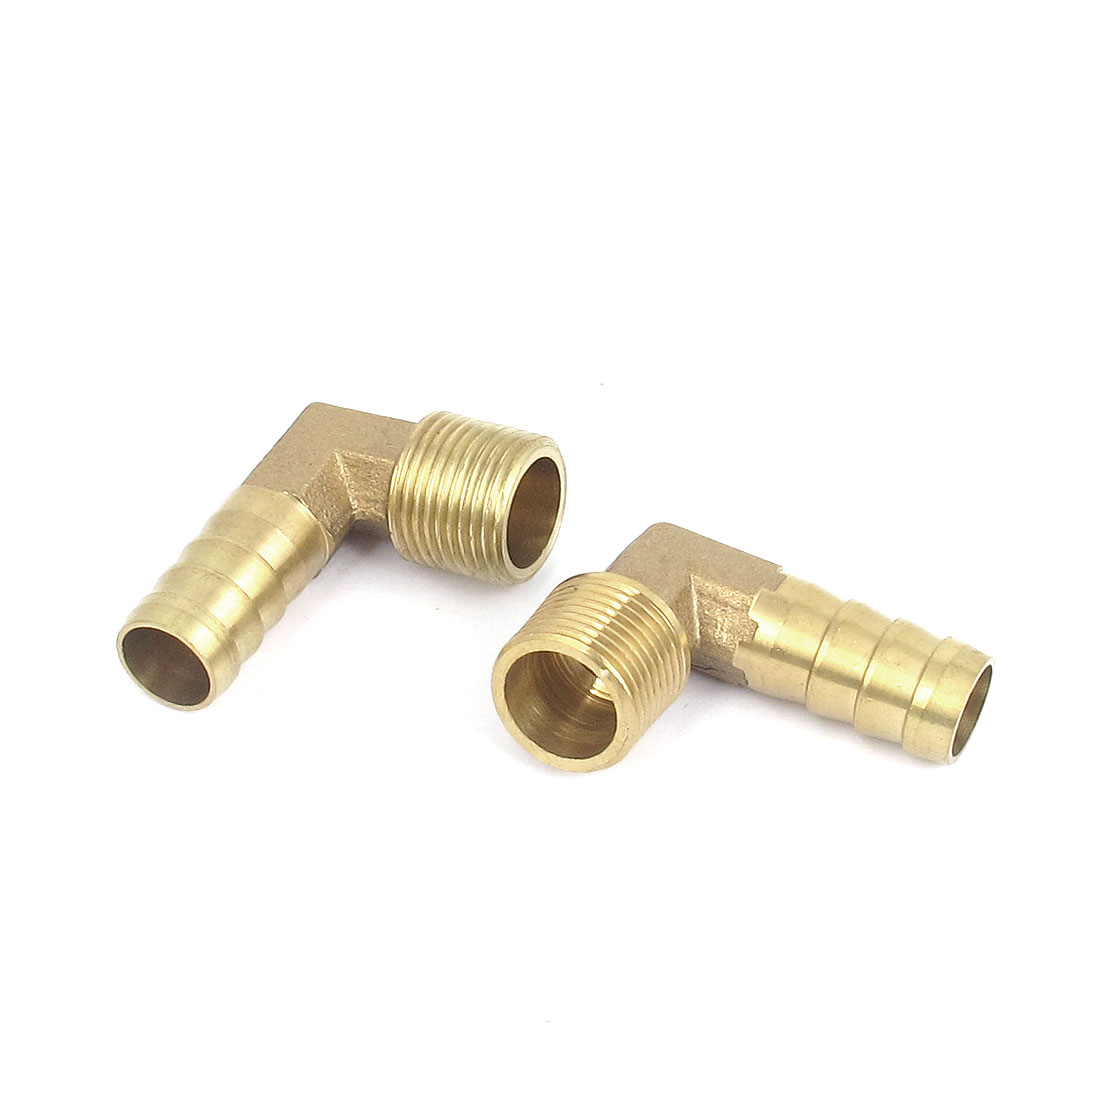 3/8BSP Thread 12mm Tube Dia 90 Degree Brass Hose Barb Coupler Connector 2pcs